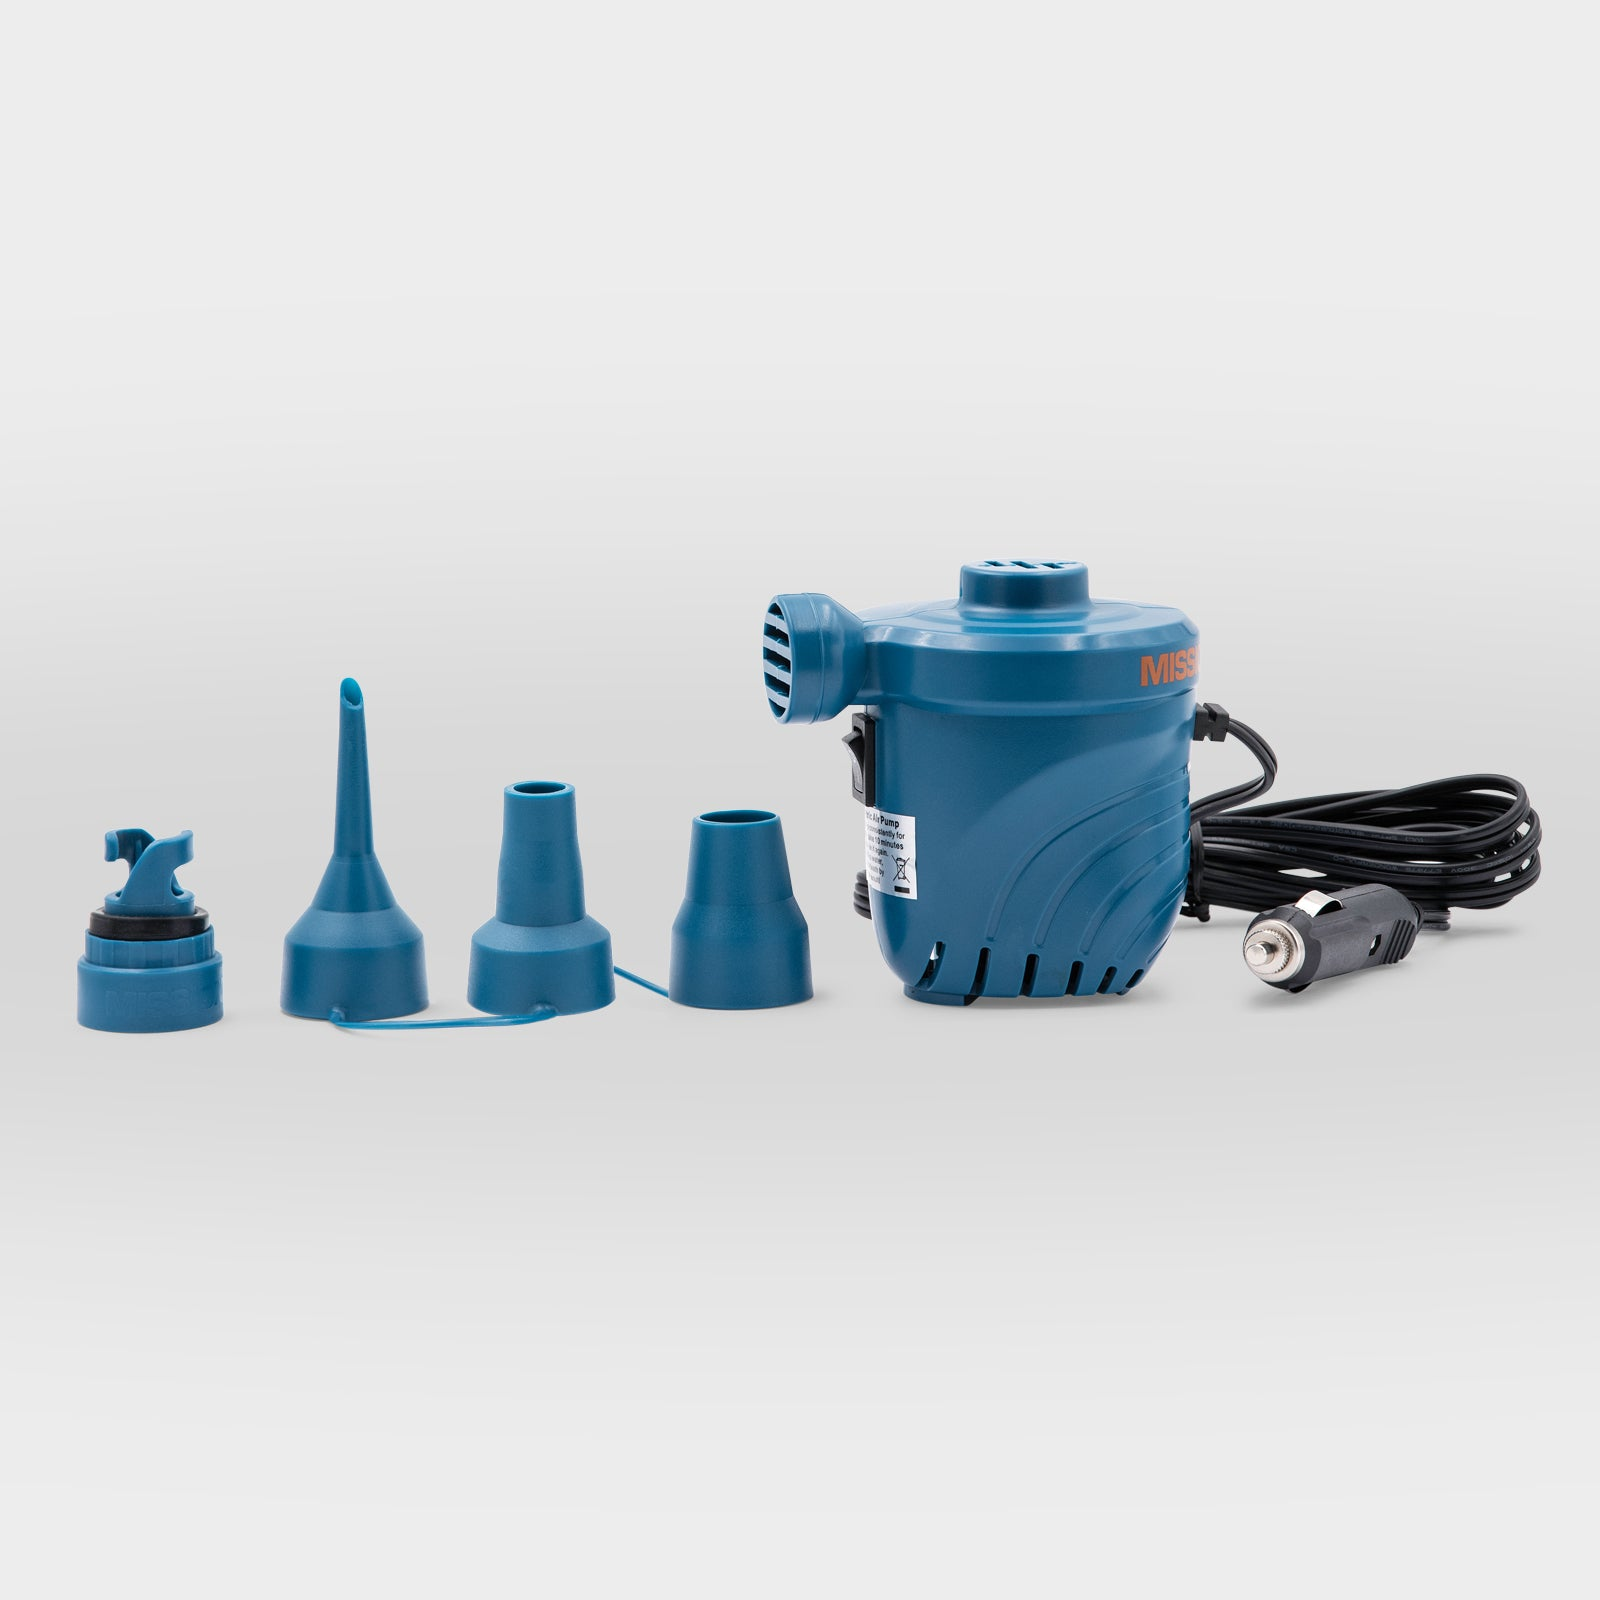 PUMP :: 12v DC Low Pressure Pump for REEF, TITAN, or TRIDENT